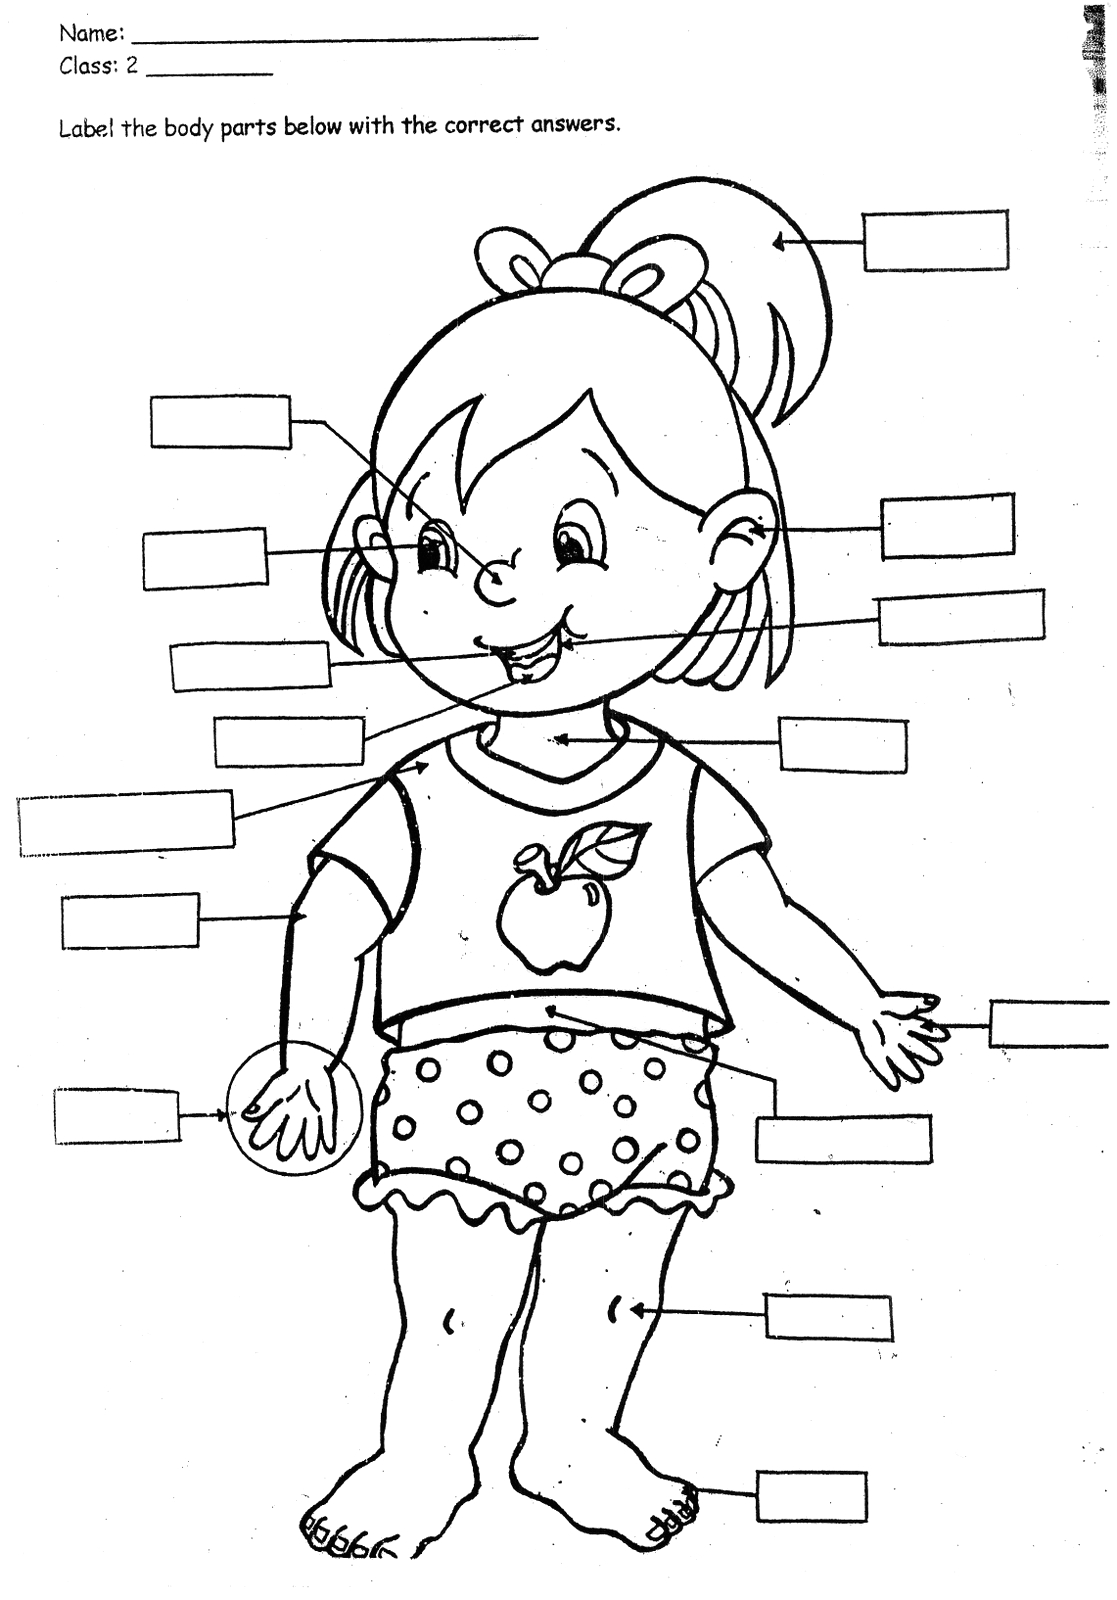 Coloring Pages for Kids Parts Of the Body Time4english Parts Of the Body